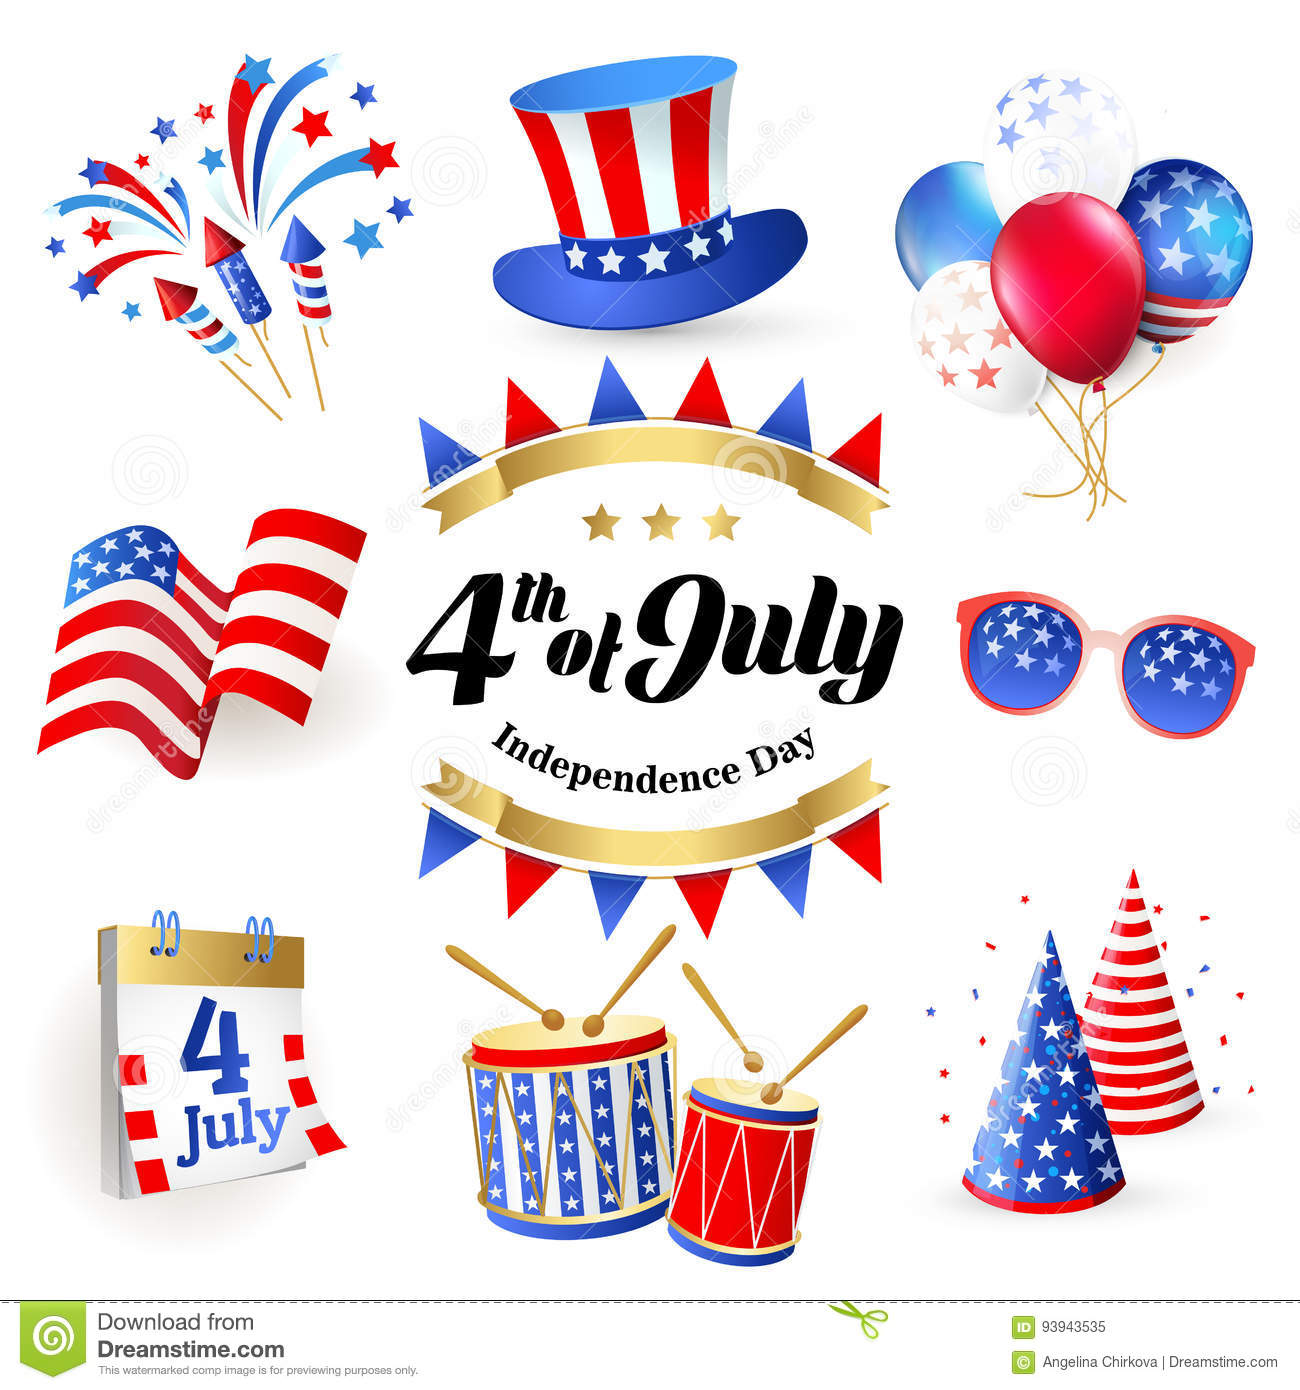 4th of july independence day of united states of america poster 4th of july independence day of united states of america poster banner biocorpaavc Images